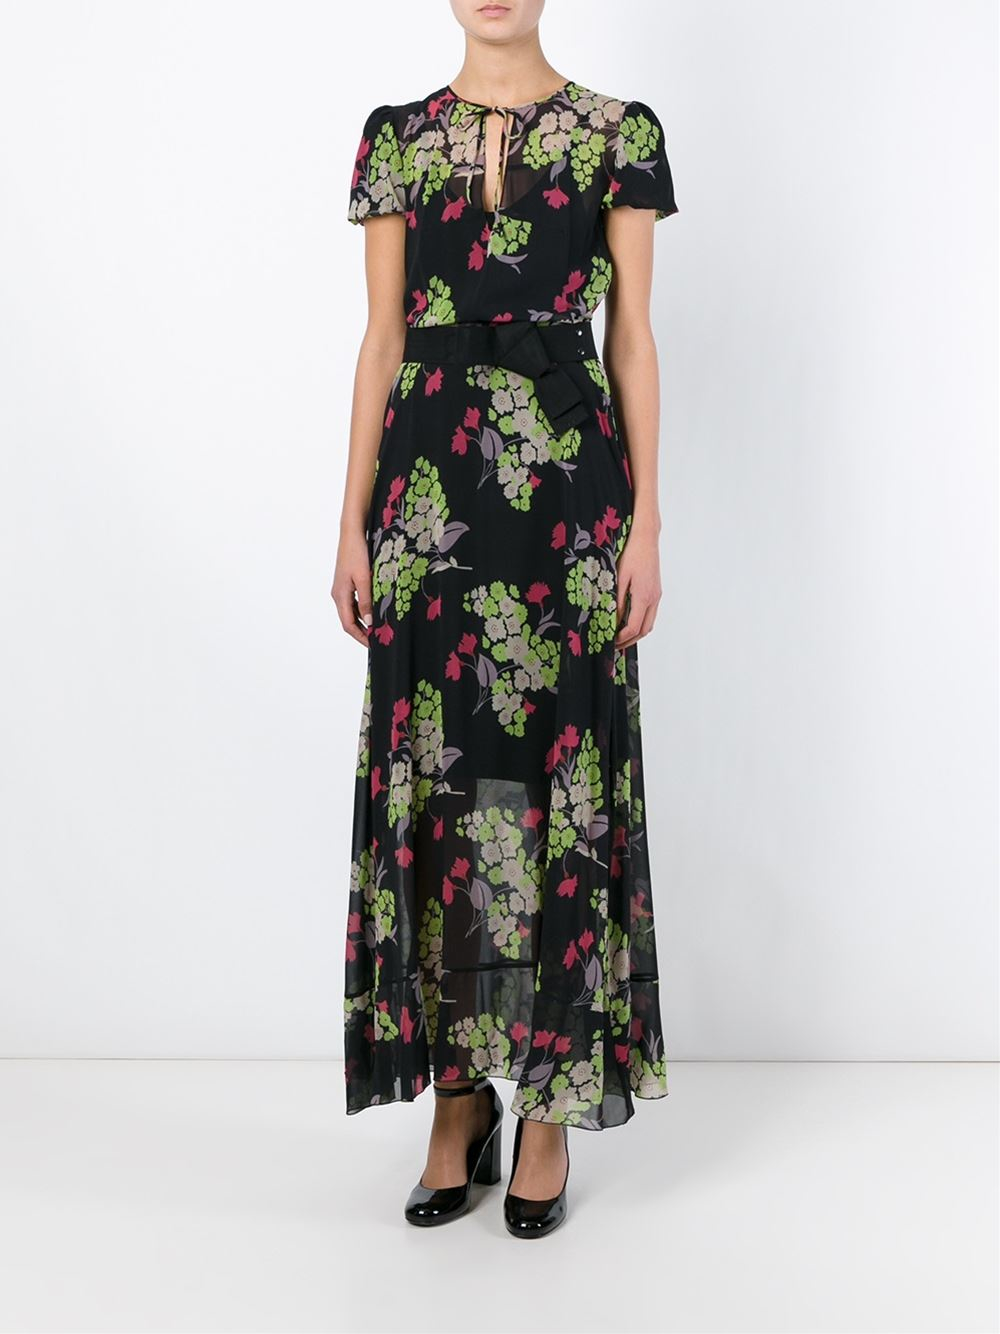 Lyst Red Valentino Floral Print Sheer Long Dress In Black